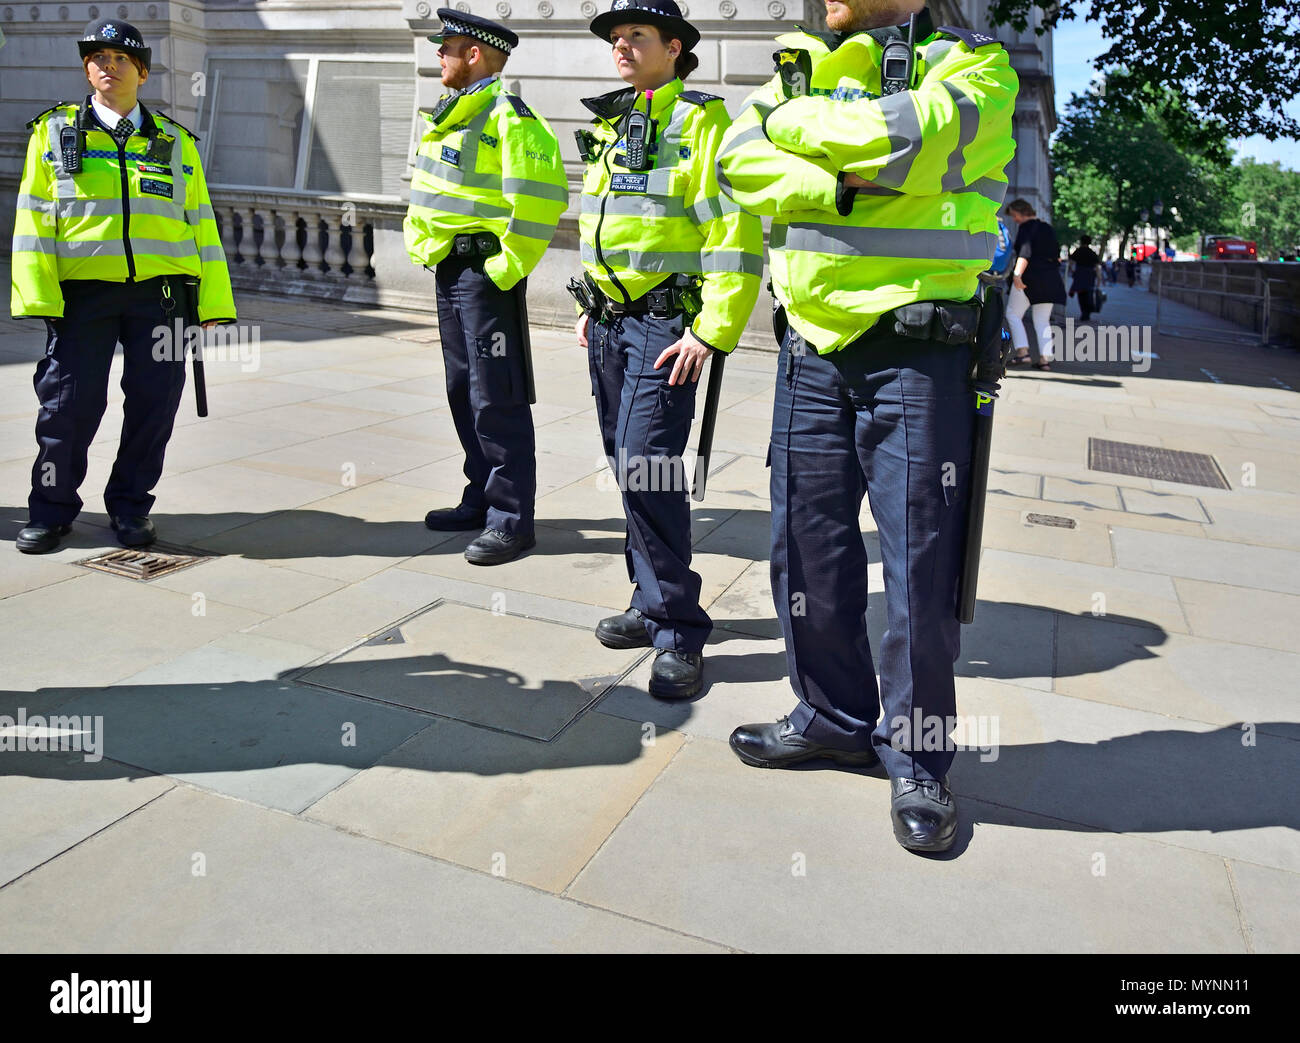 Police officers in Hi-Vis jackets in Whitehall, Westminster, London, England, UK. - Stock Image